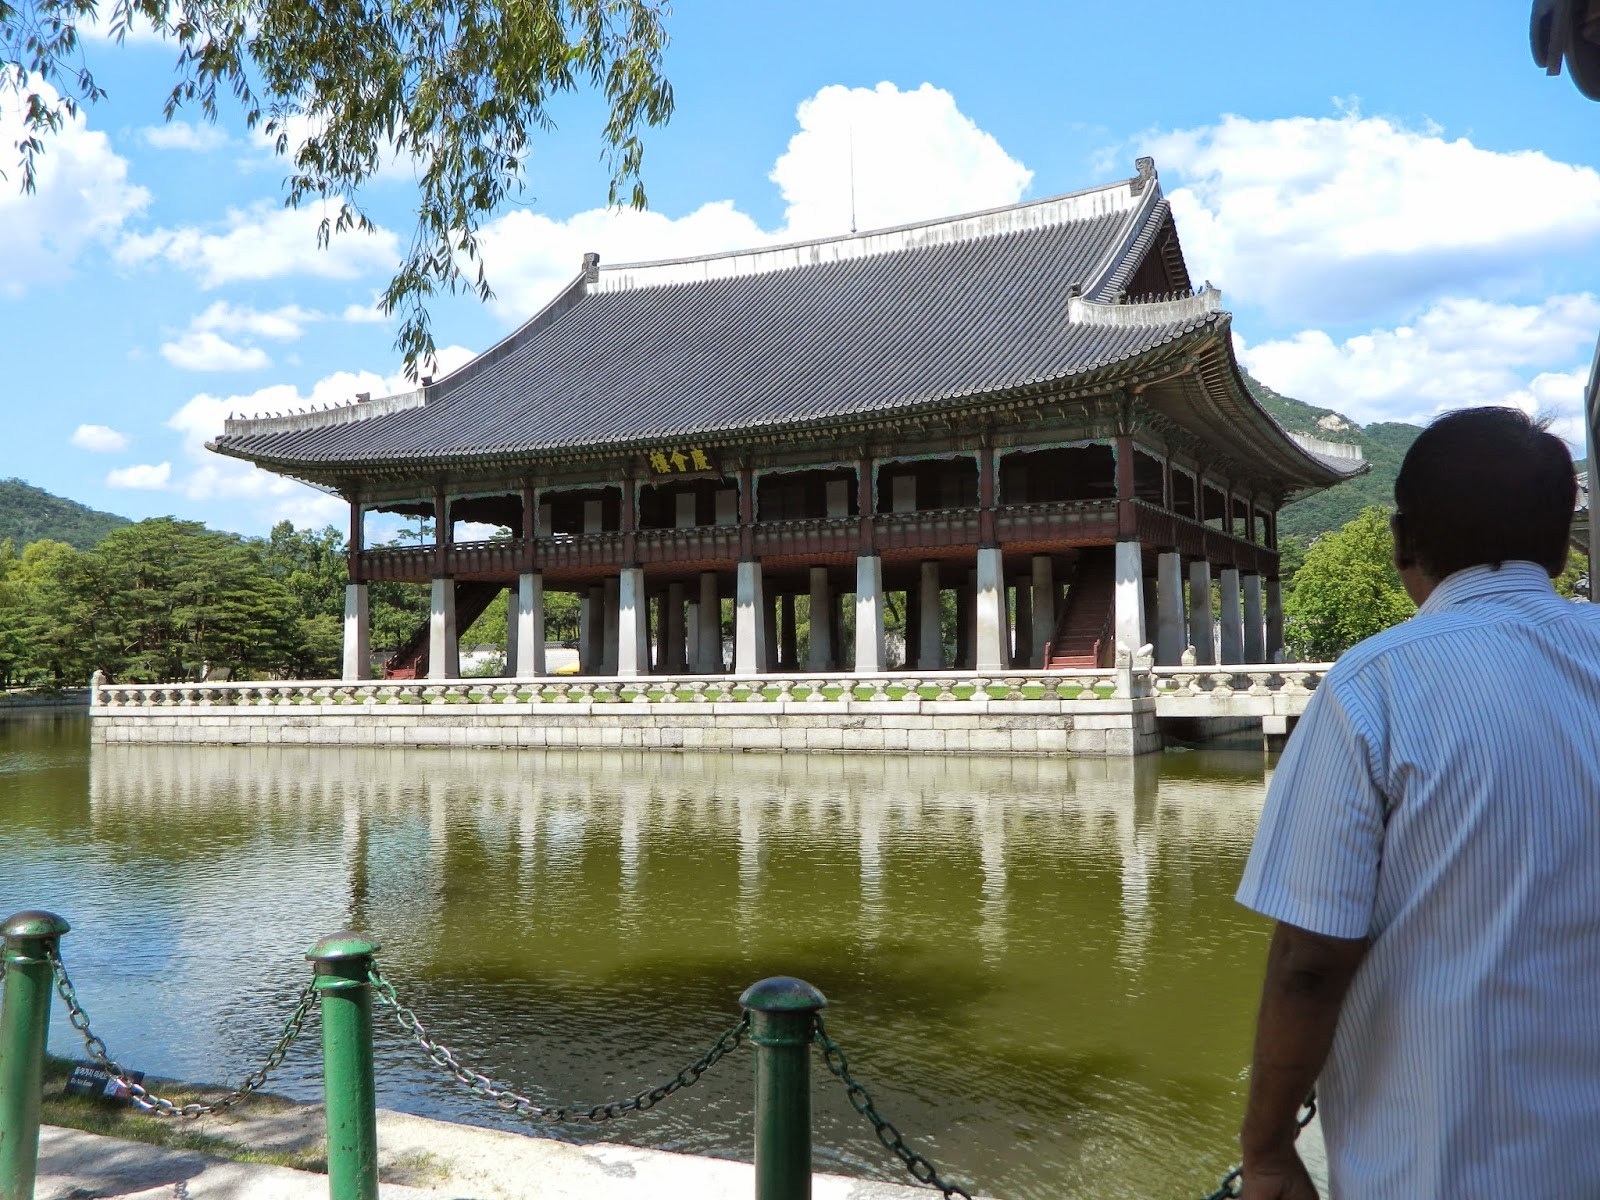 The lake in Gyeongbokgung